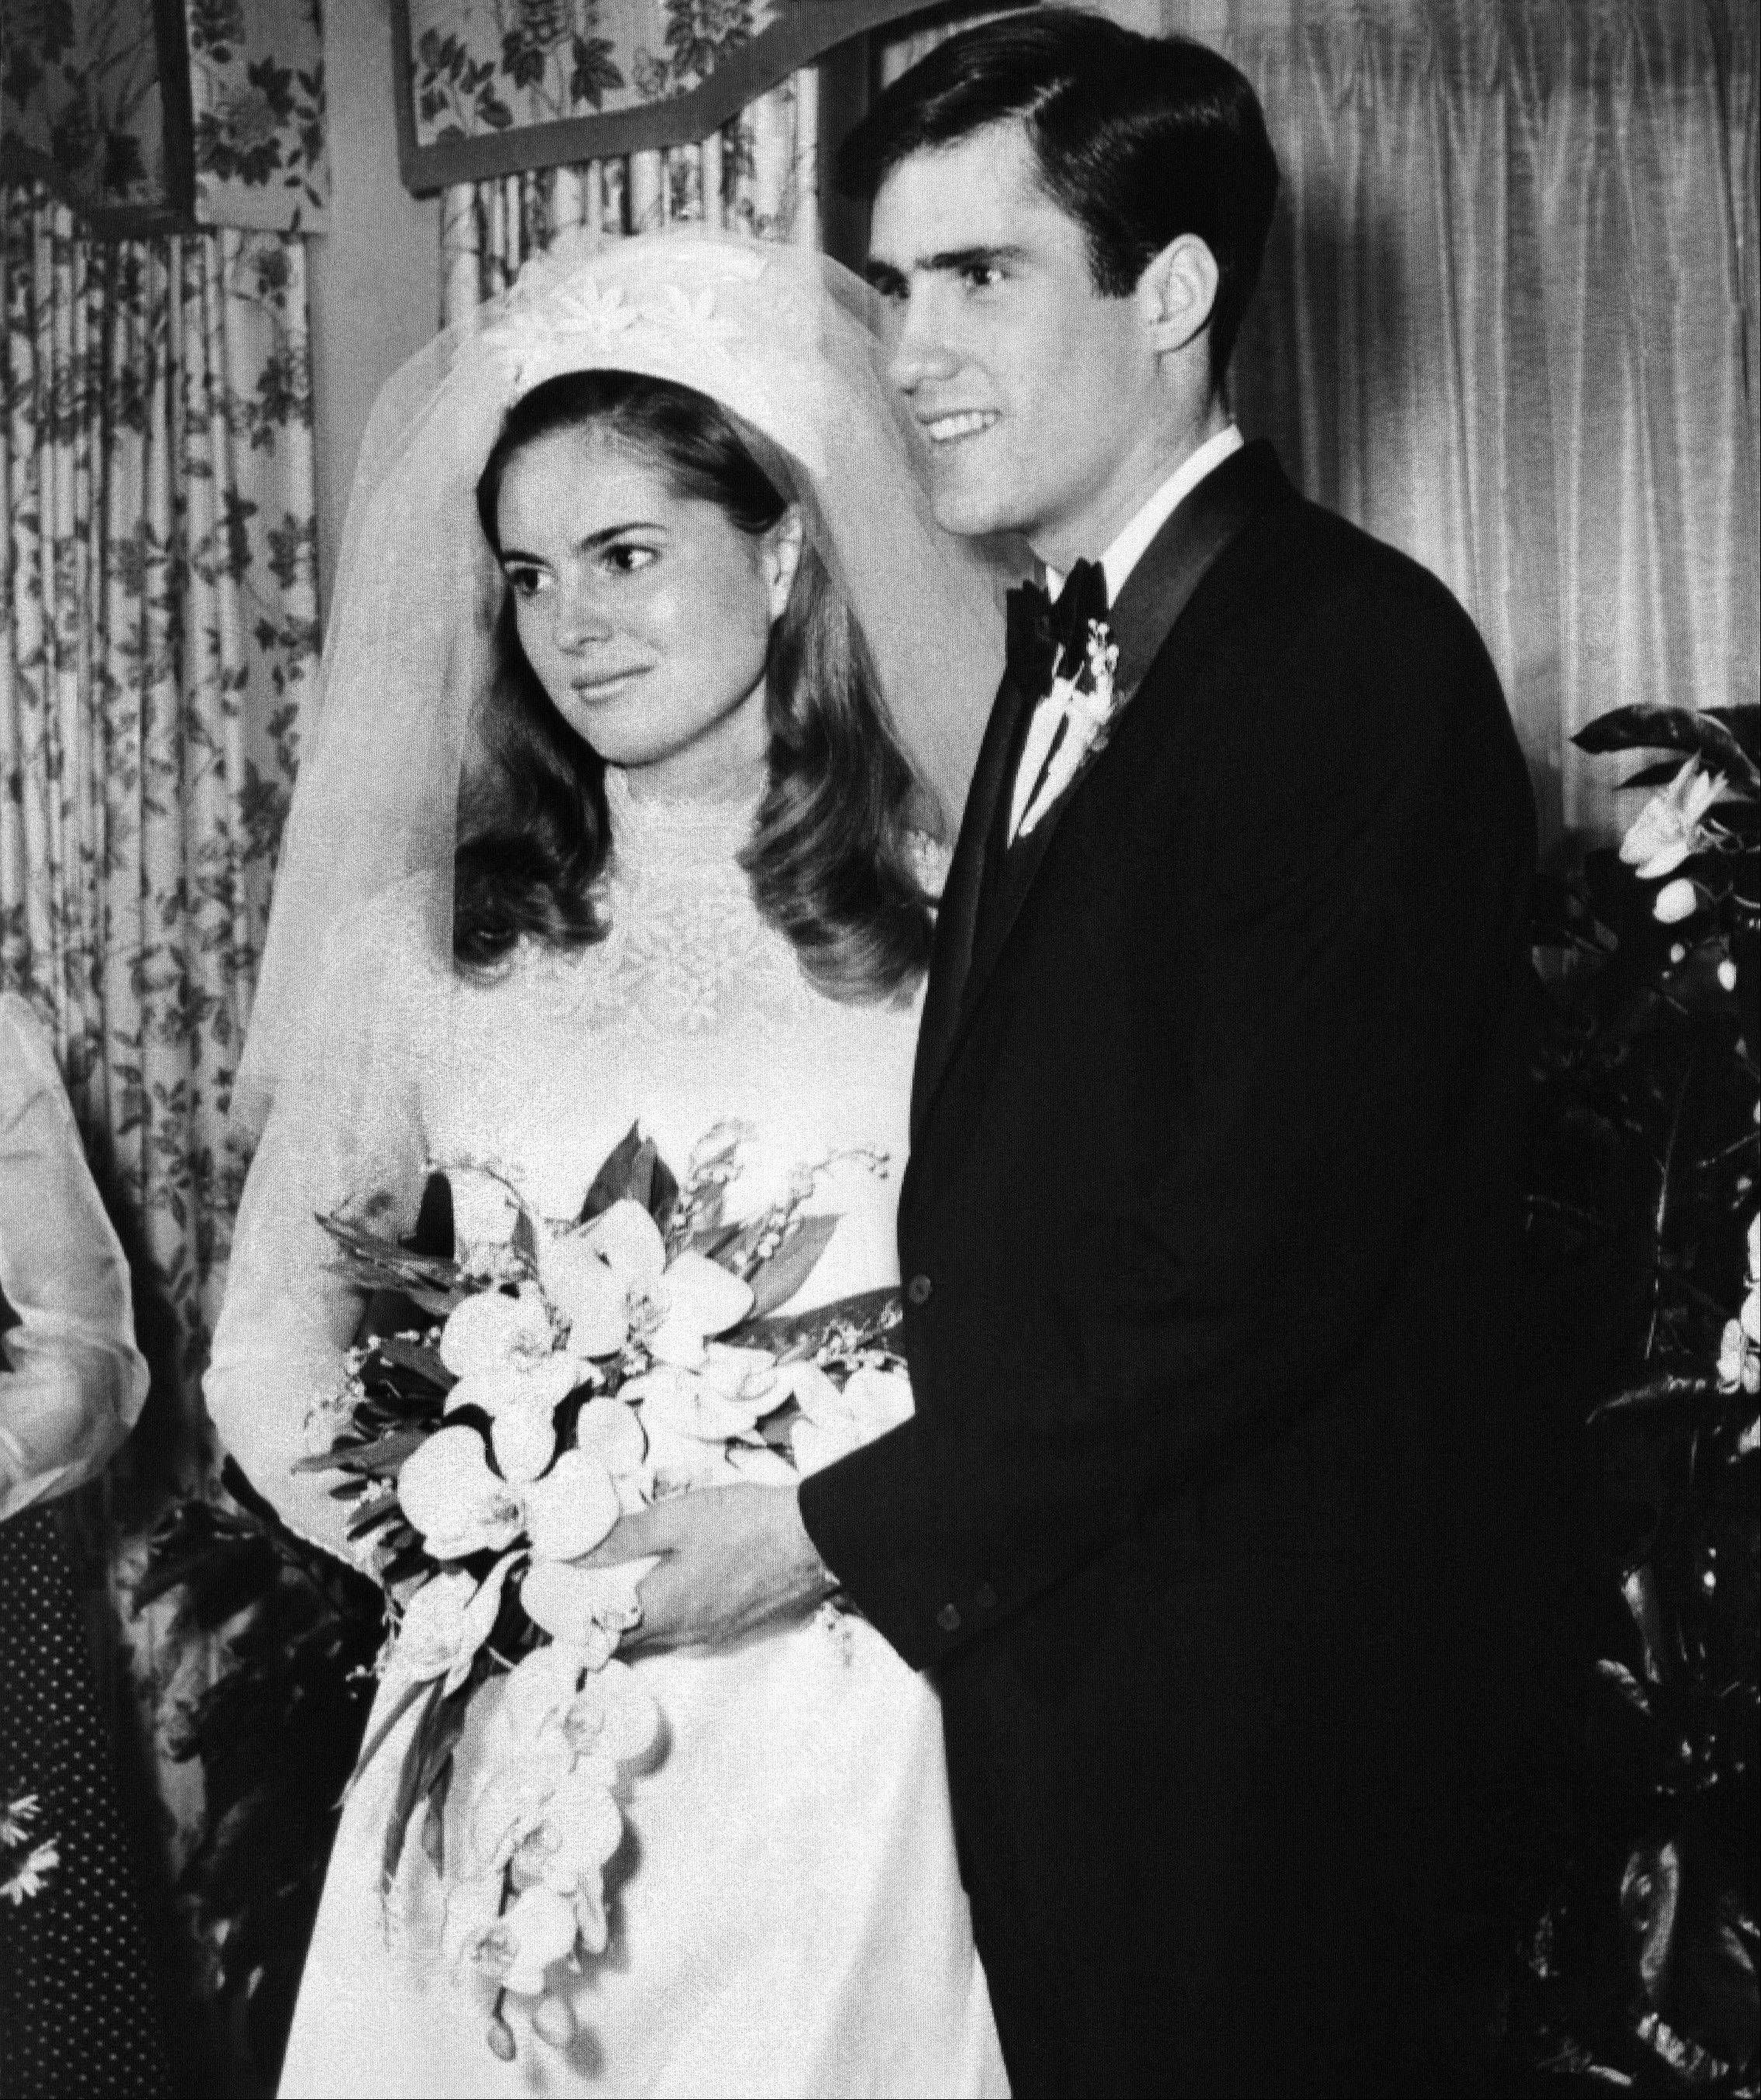 In this March 21, 1969, file photo, Ann Lois Davies and Willard Mitt Romney, second and youngest son of former Michigan Governor and Mrs. Lenore Romney, married in a civil ceremony at the brides family home in Bloomfield Hills, Mich. The couple then resumed their studies at Brigham Young University, Provo, Utah, after a brief honeymoon.